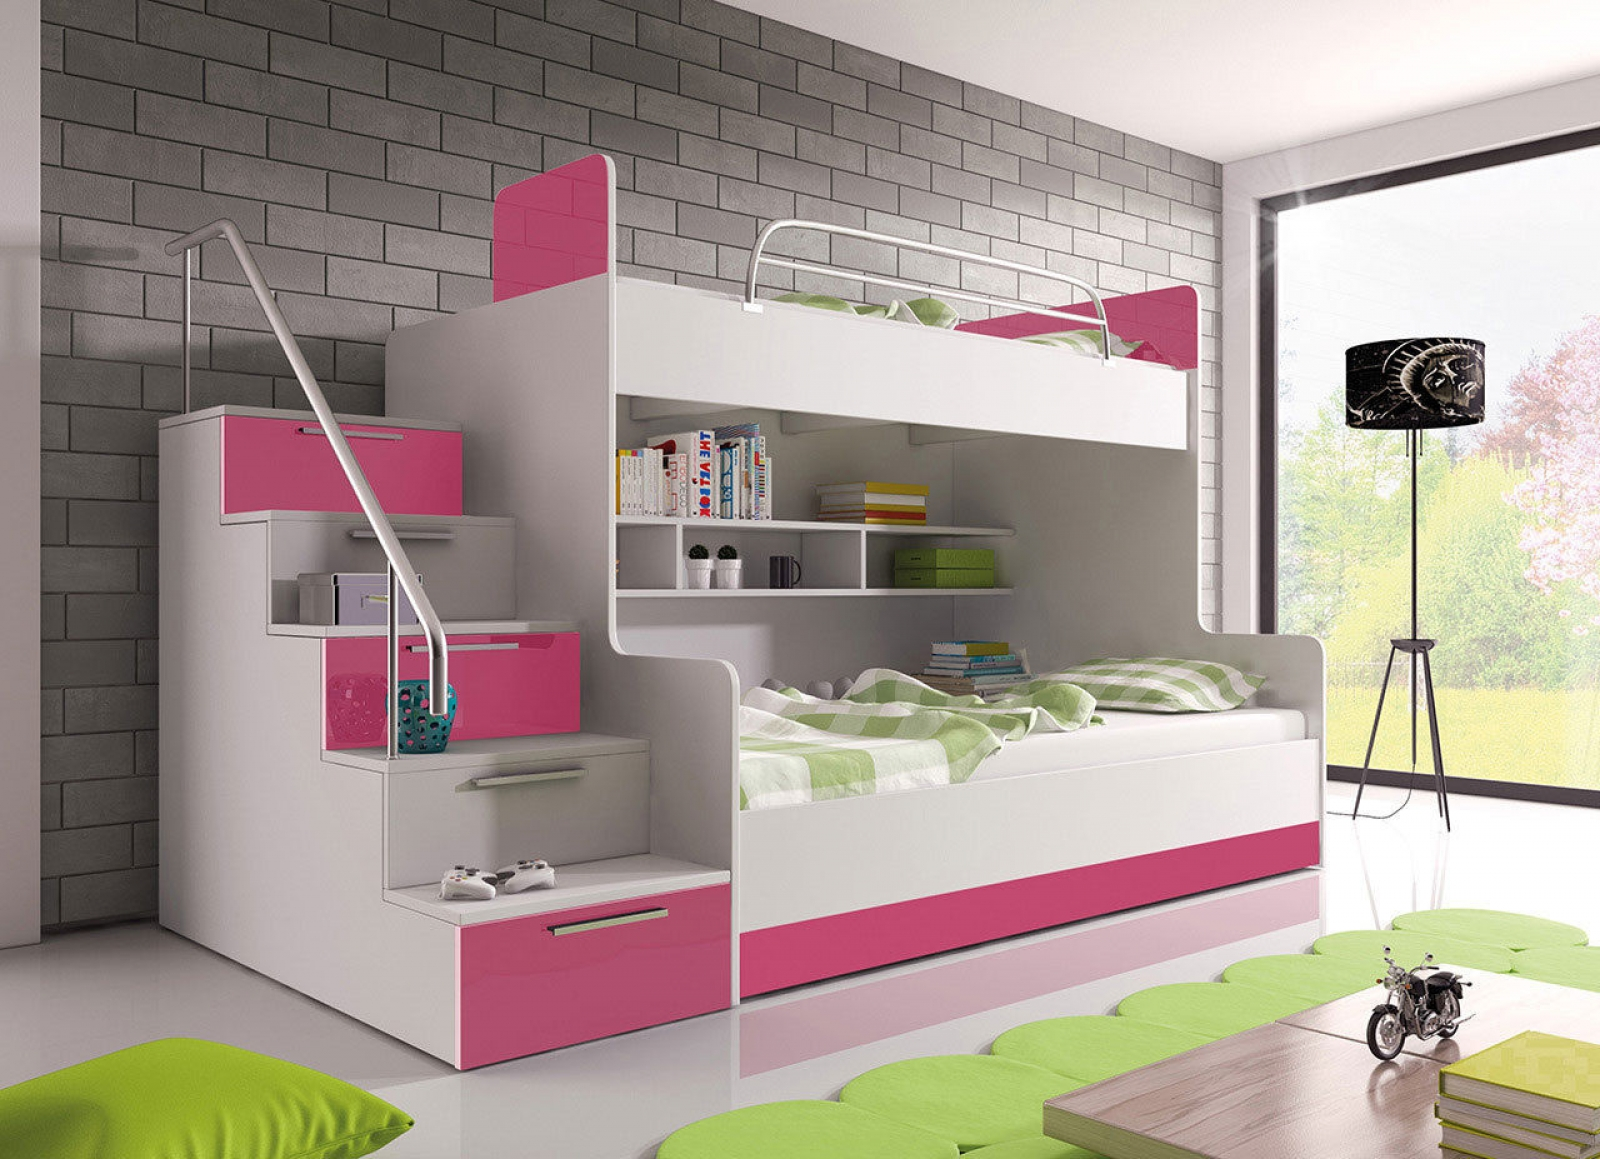 kaufexpert doppelstockbett rosa hochglanz links etagenbett hochglanz kinderbett bett kinder. Black Bedroom Furniture Sets. Home Design Ideas